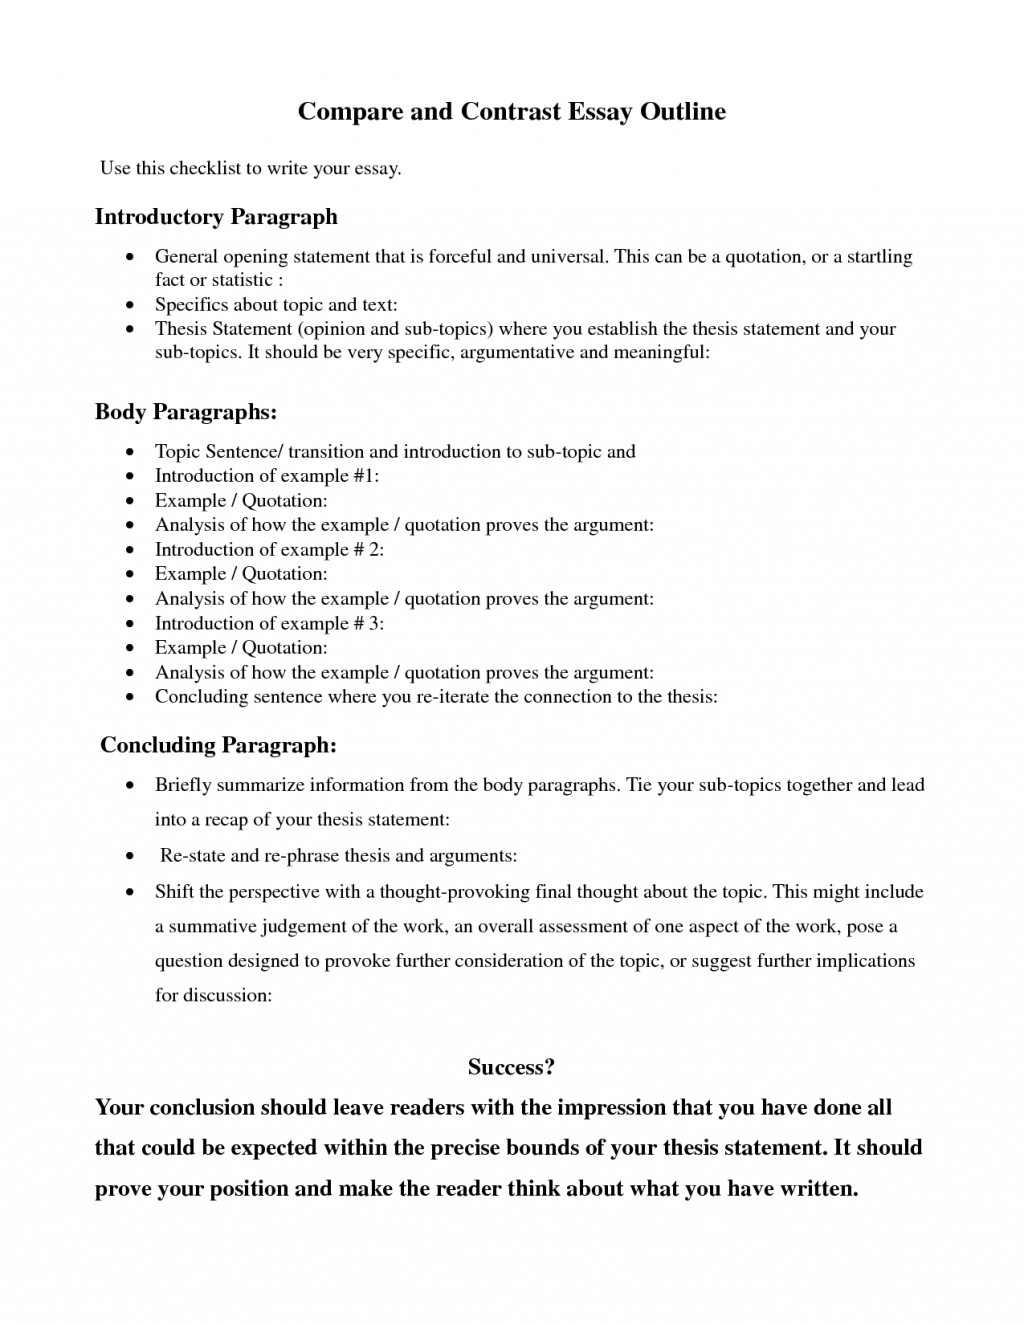 002 Compare And Contrast Essay Template Exceptional For Middle School 8th Grade Examples Large